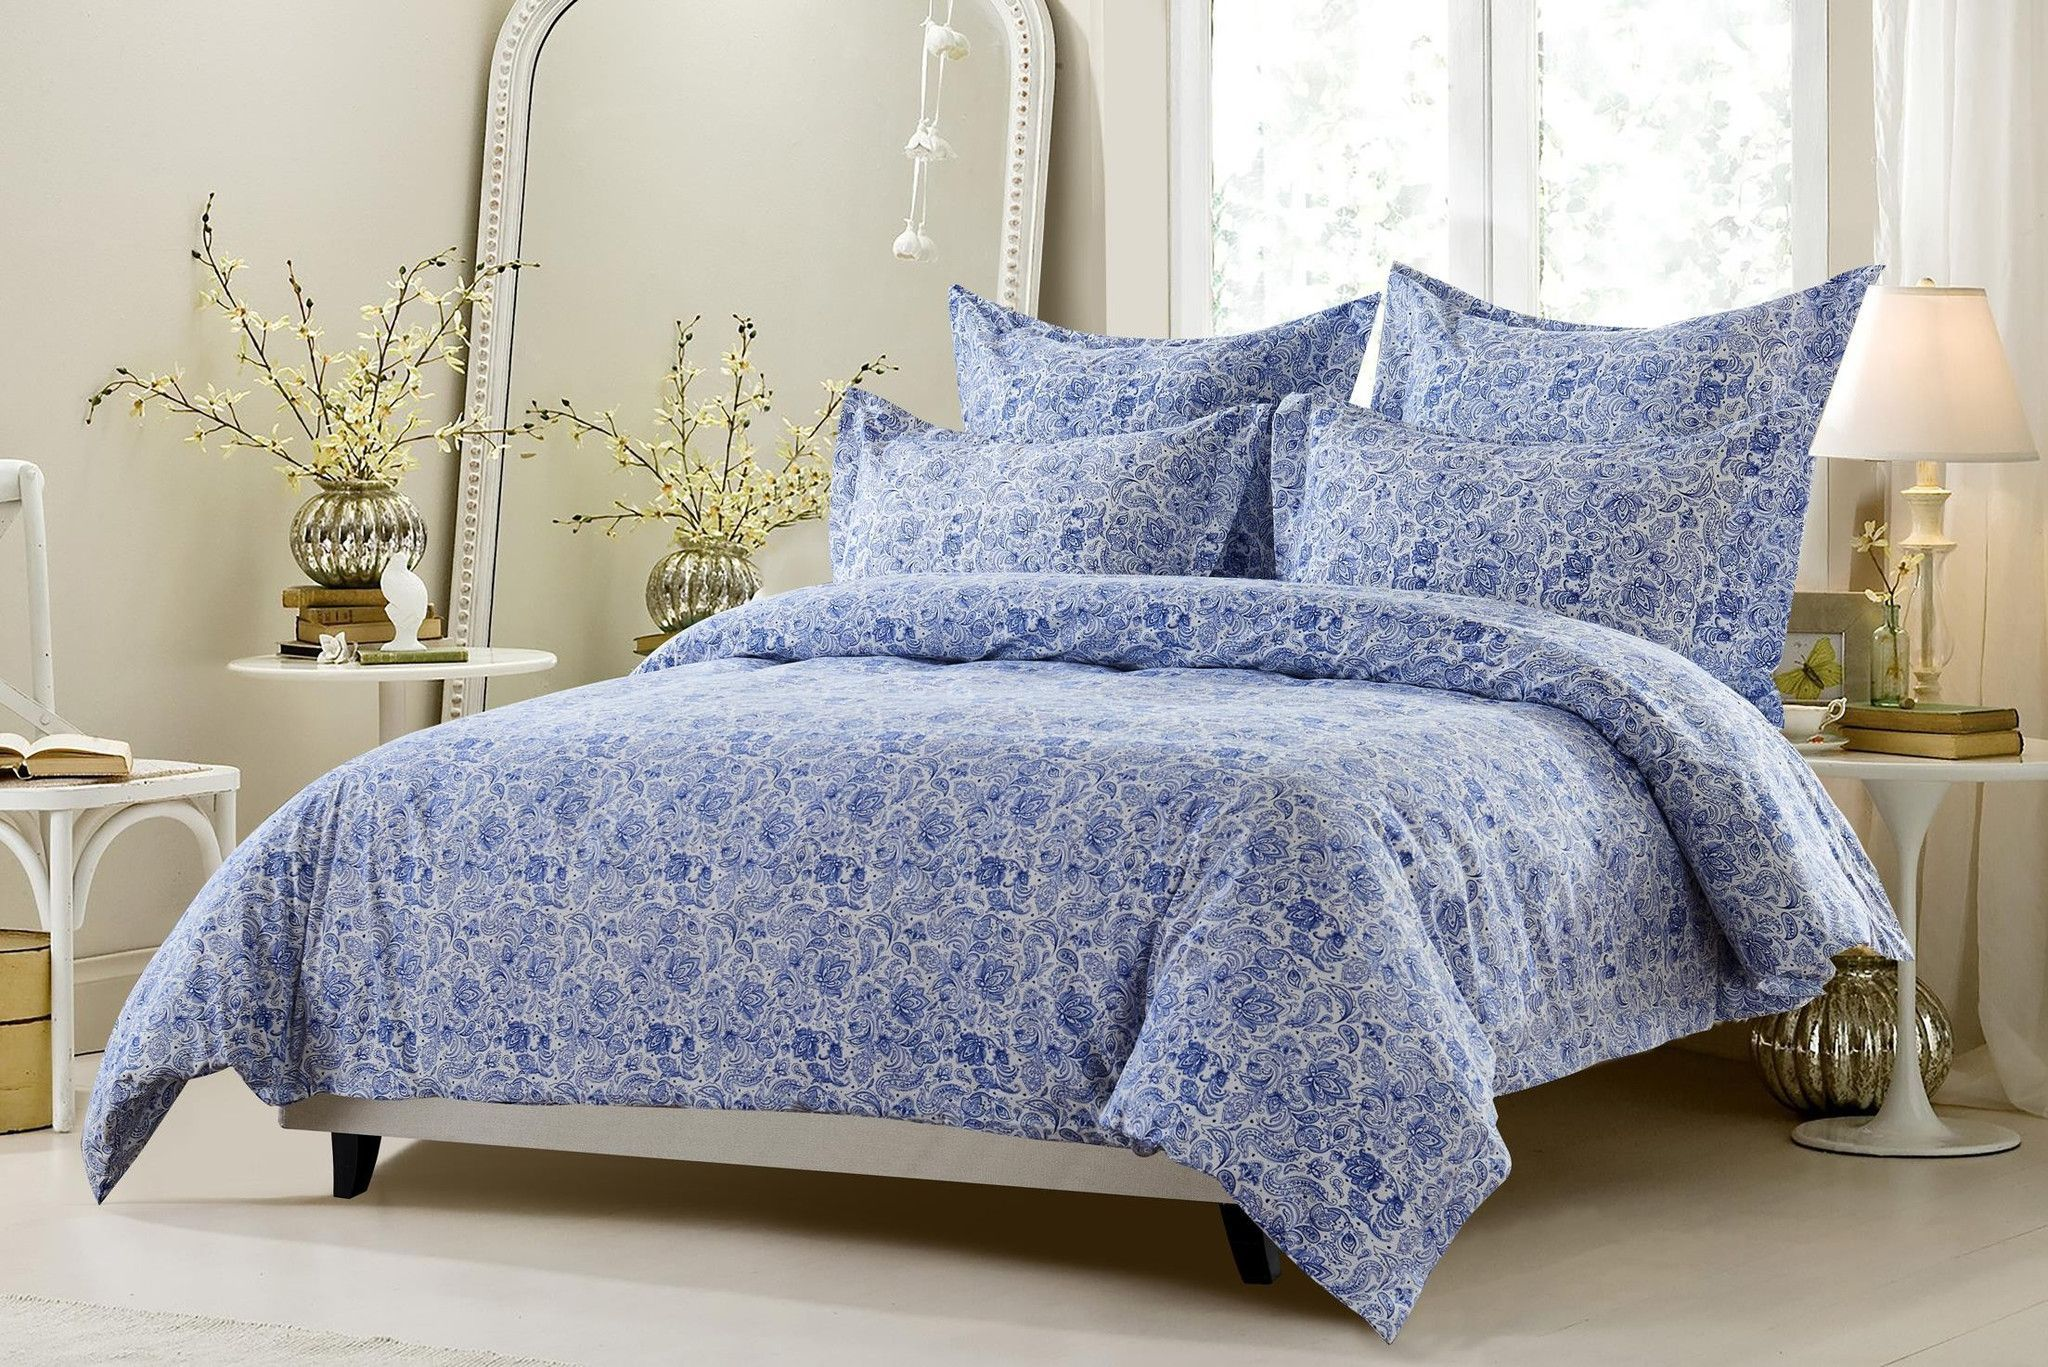 6Pc King Navy White Paisley Bedding Set Includes Comforter And Duvet